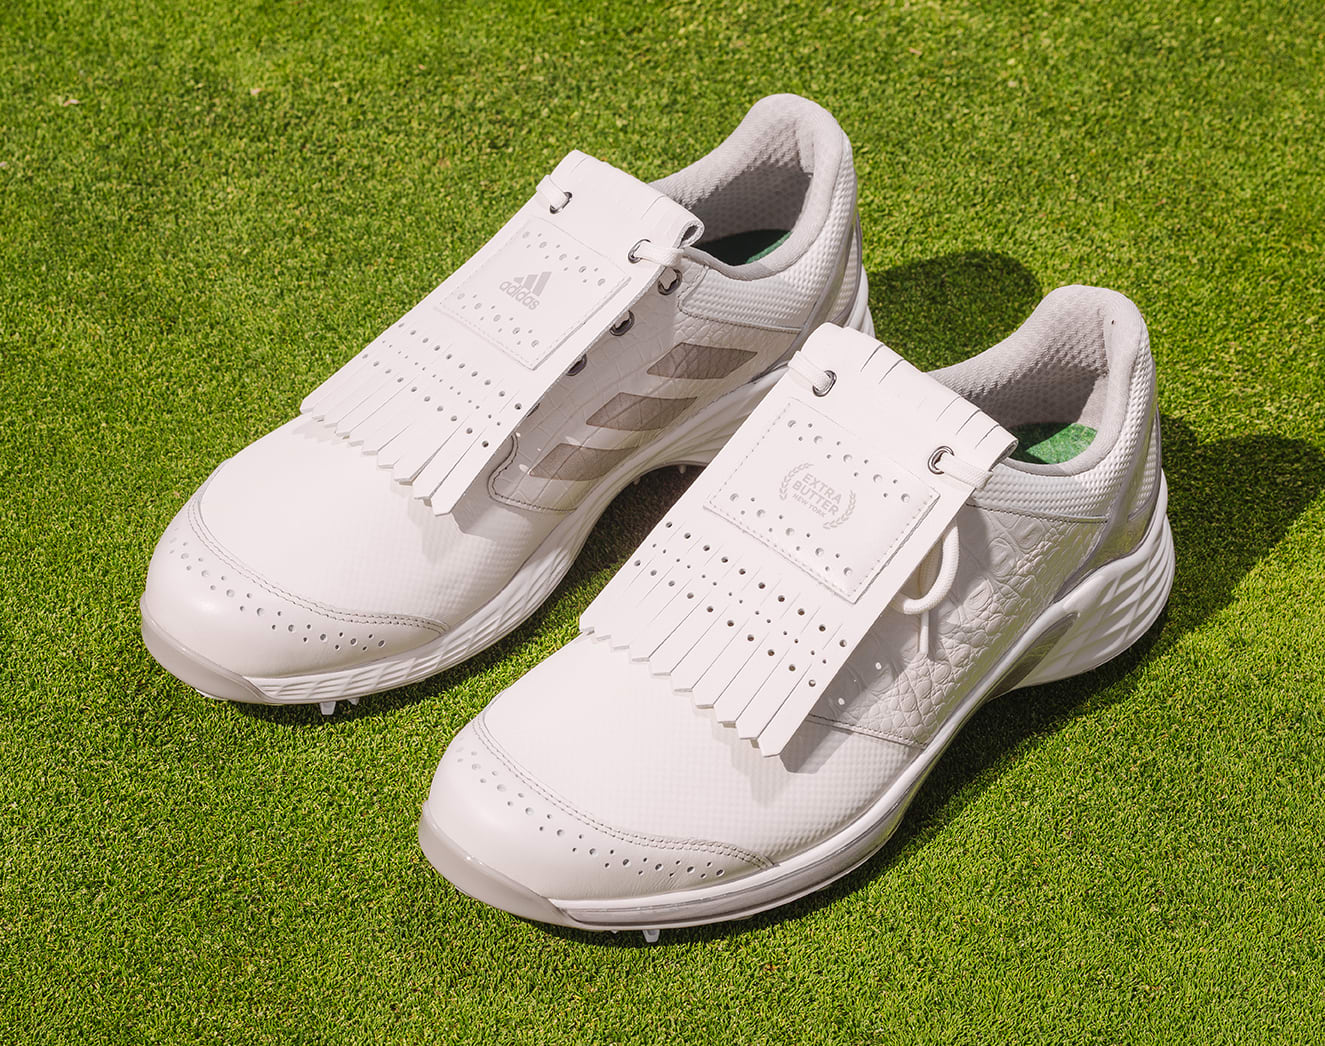 Extra Butter x Adidas ZG21 'Happy Gilmore'